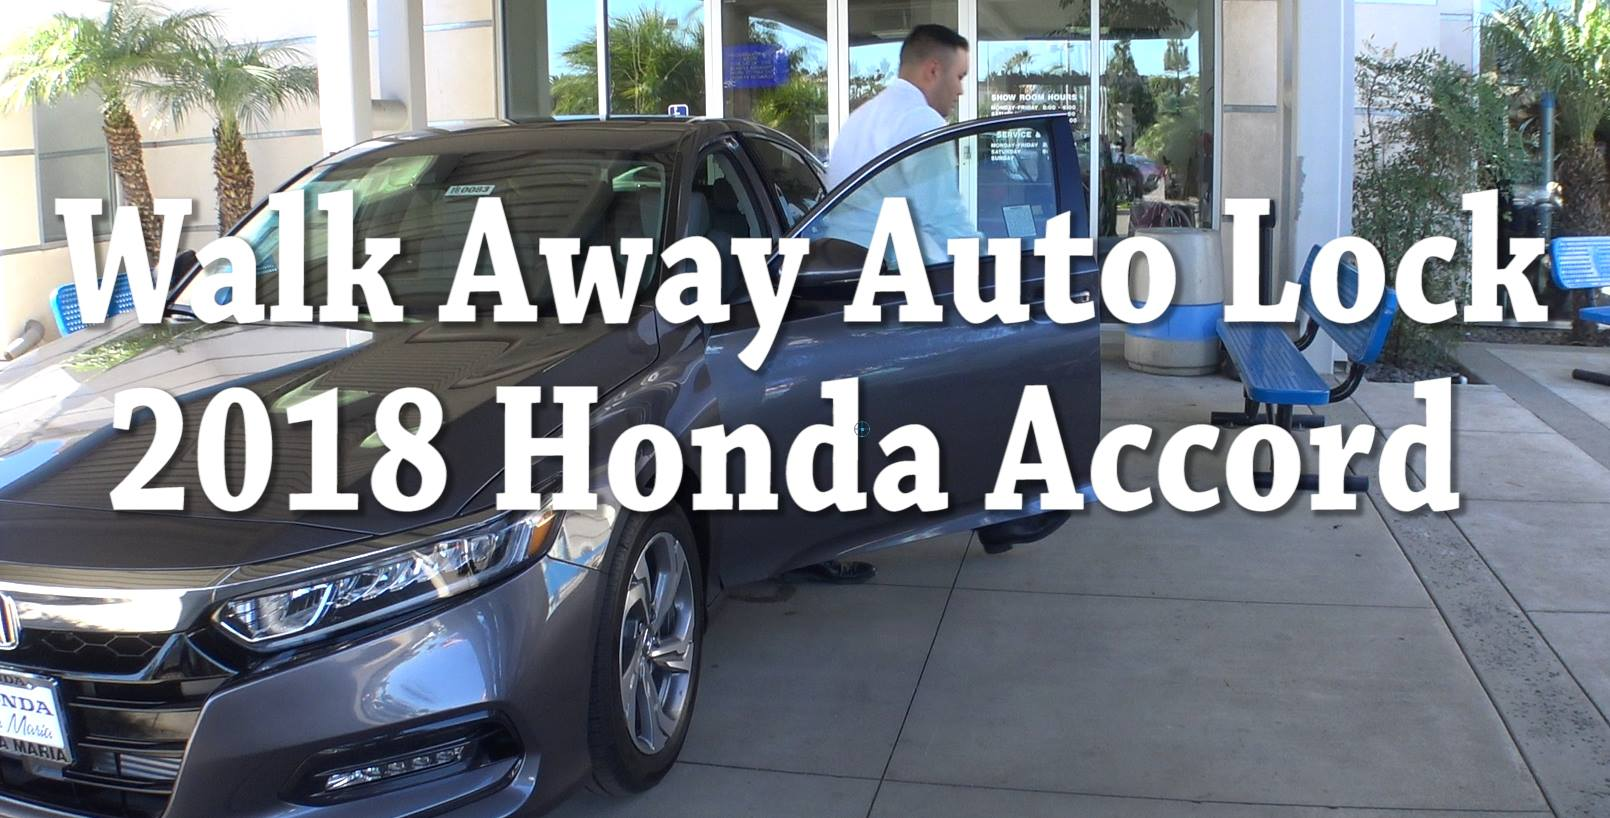 How To Set Up Walk Away Auto Lock On 2018 Honda Accord EX And Above Your Man